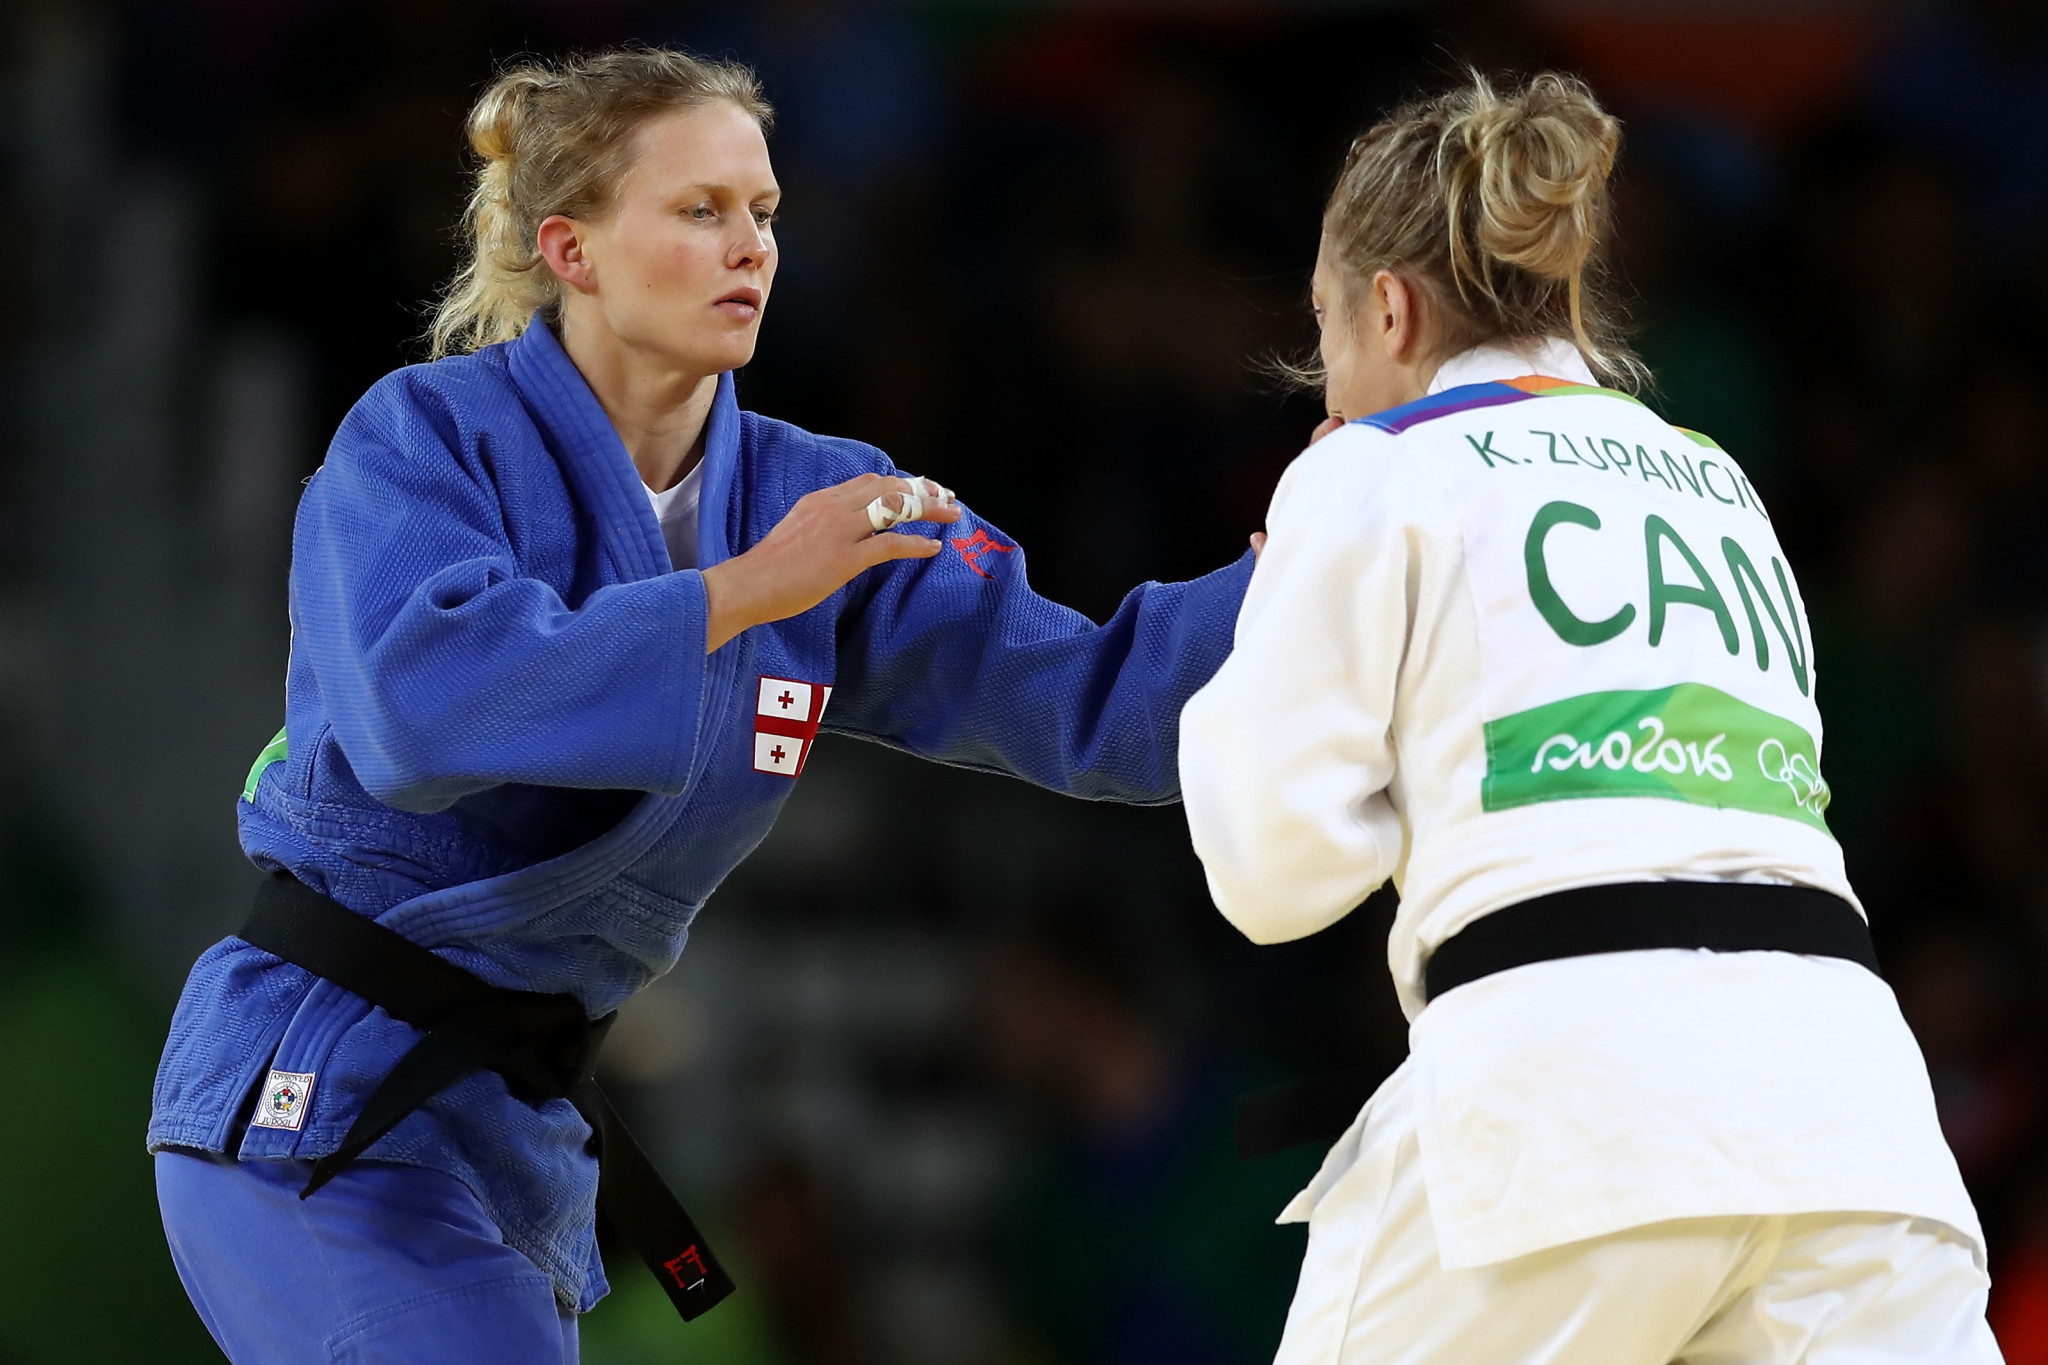 Judo Olympian Esther Stam of Georgia will commentate on the IBSA 2018 Judo World Championships ©Getty Images